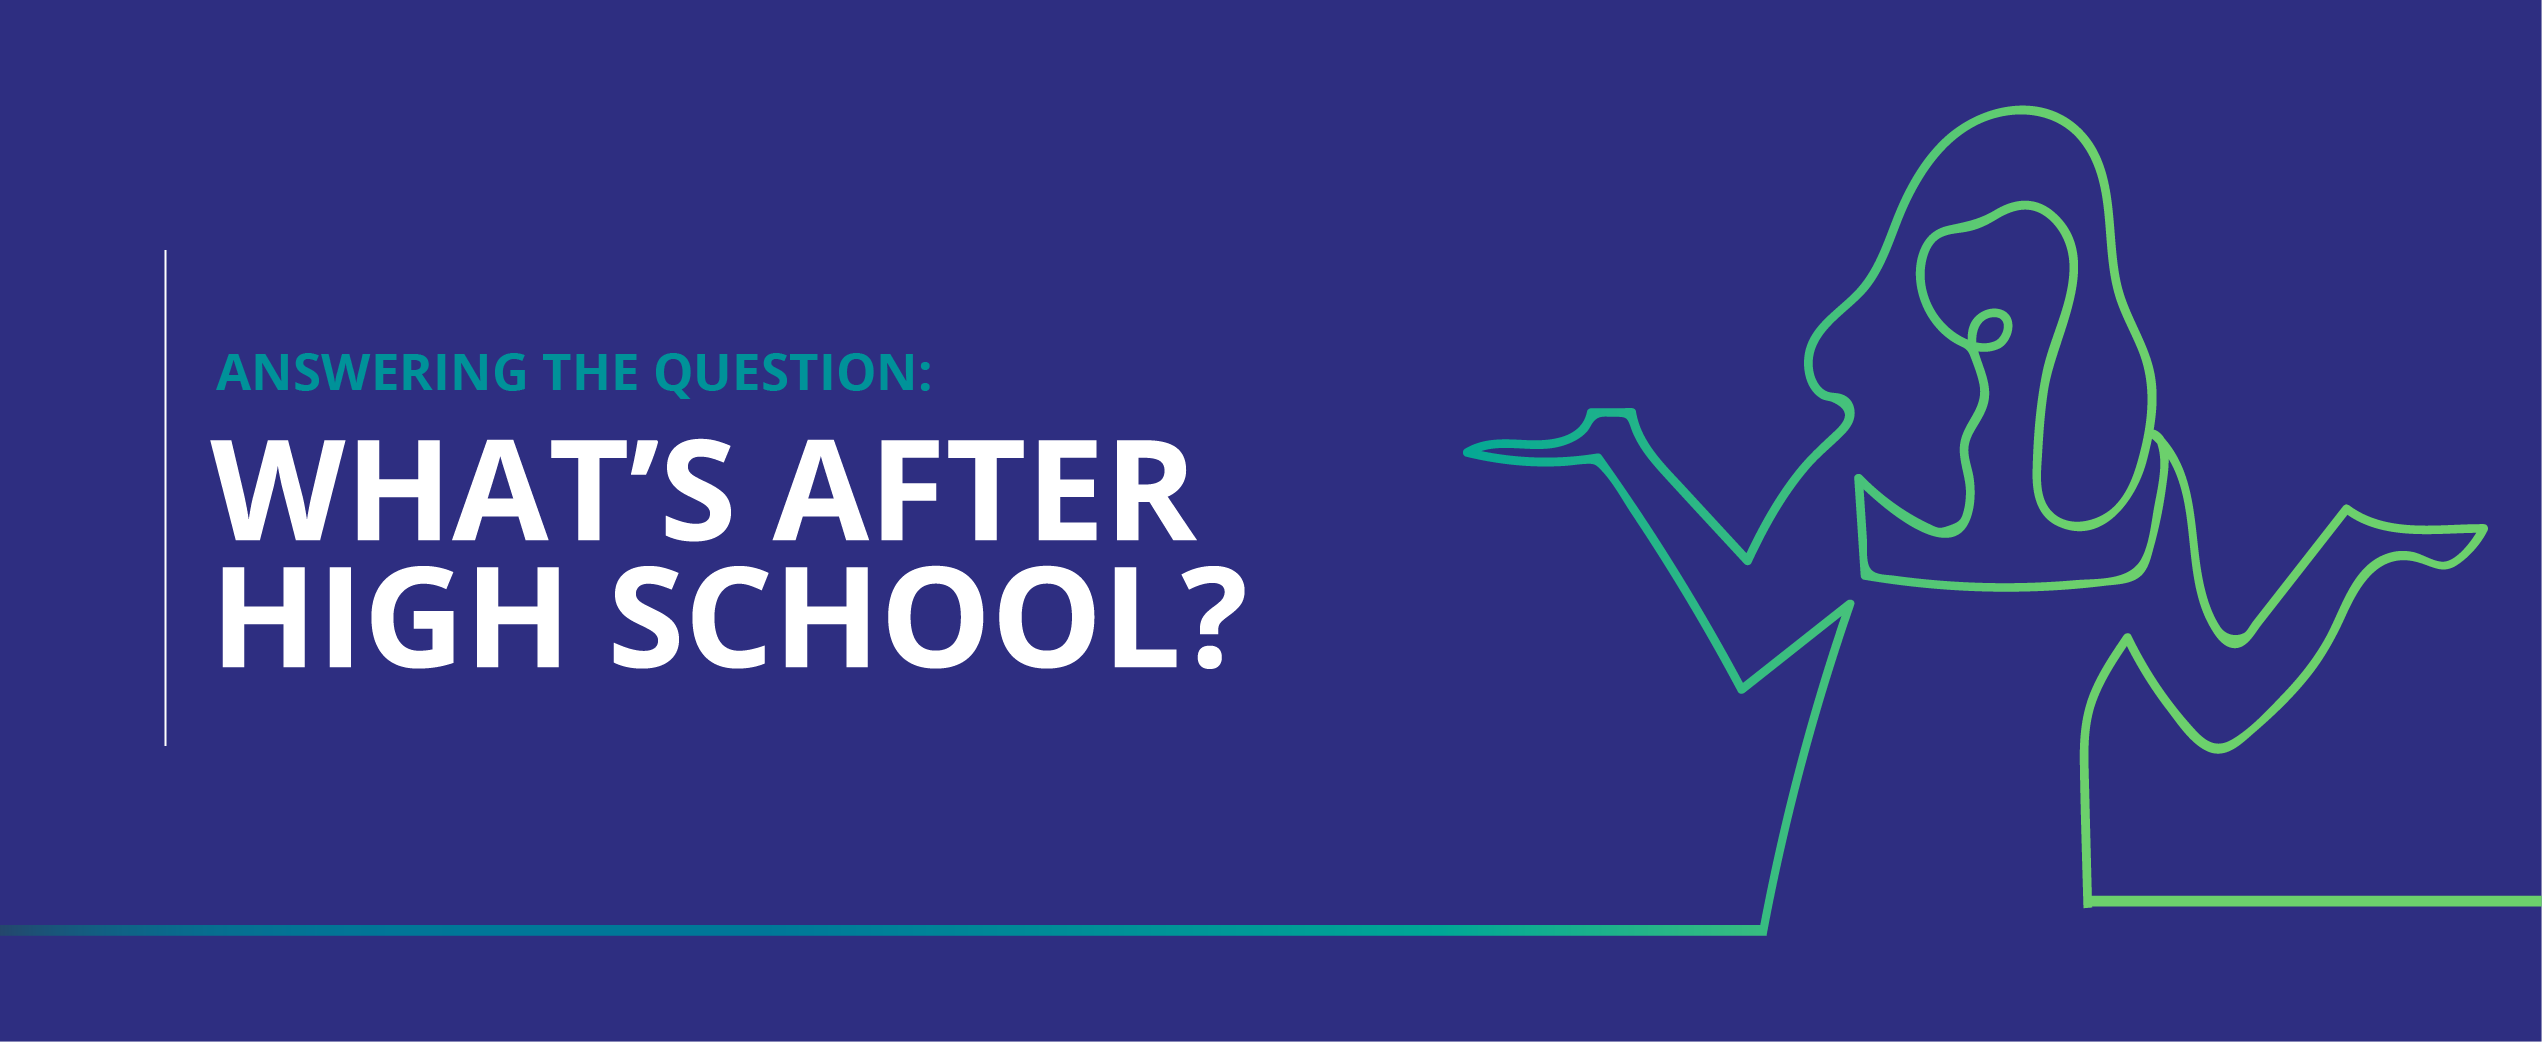 Answering the Question: What's After High School?